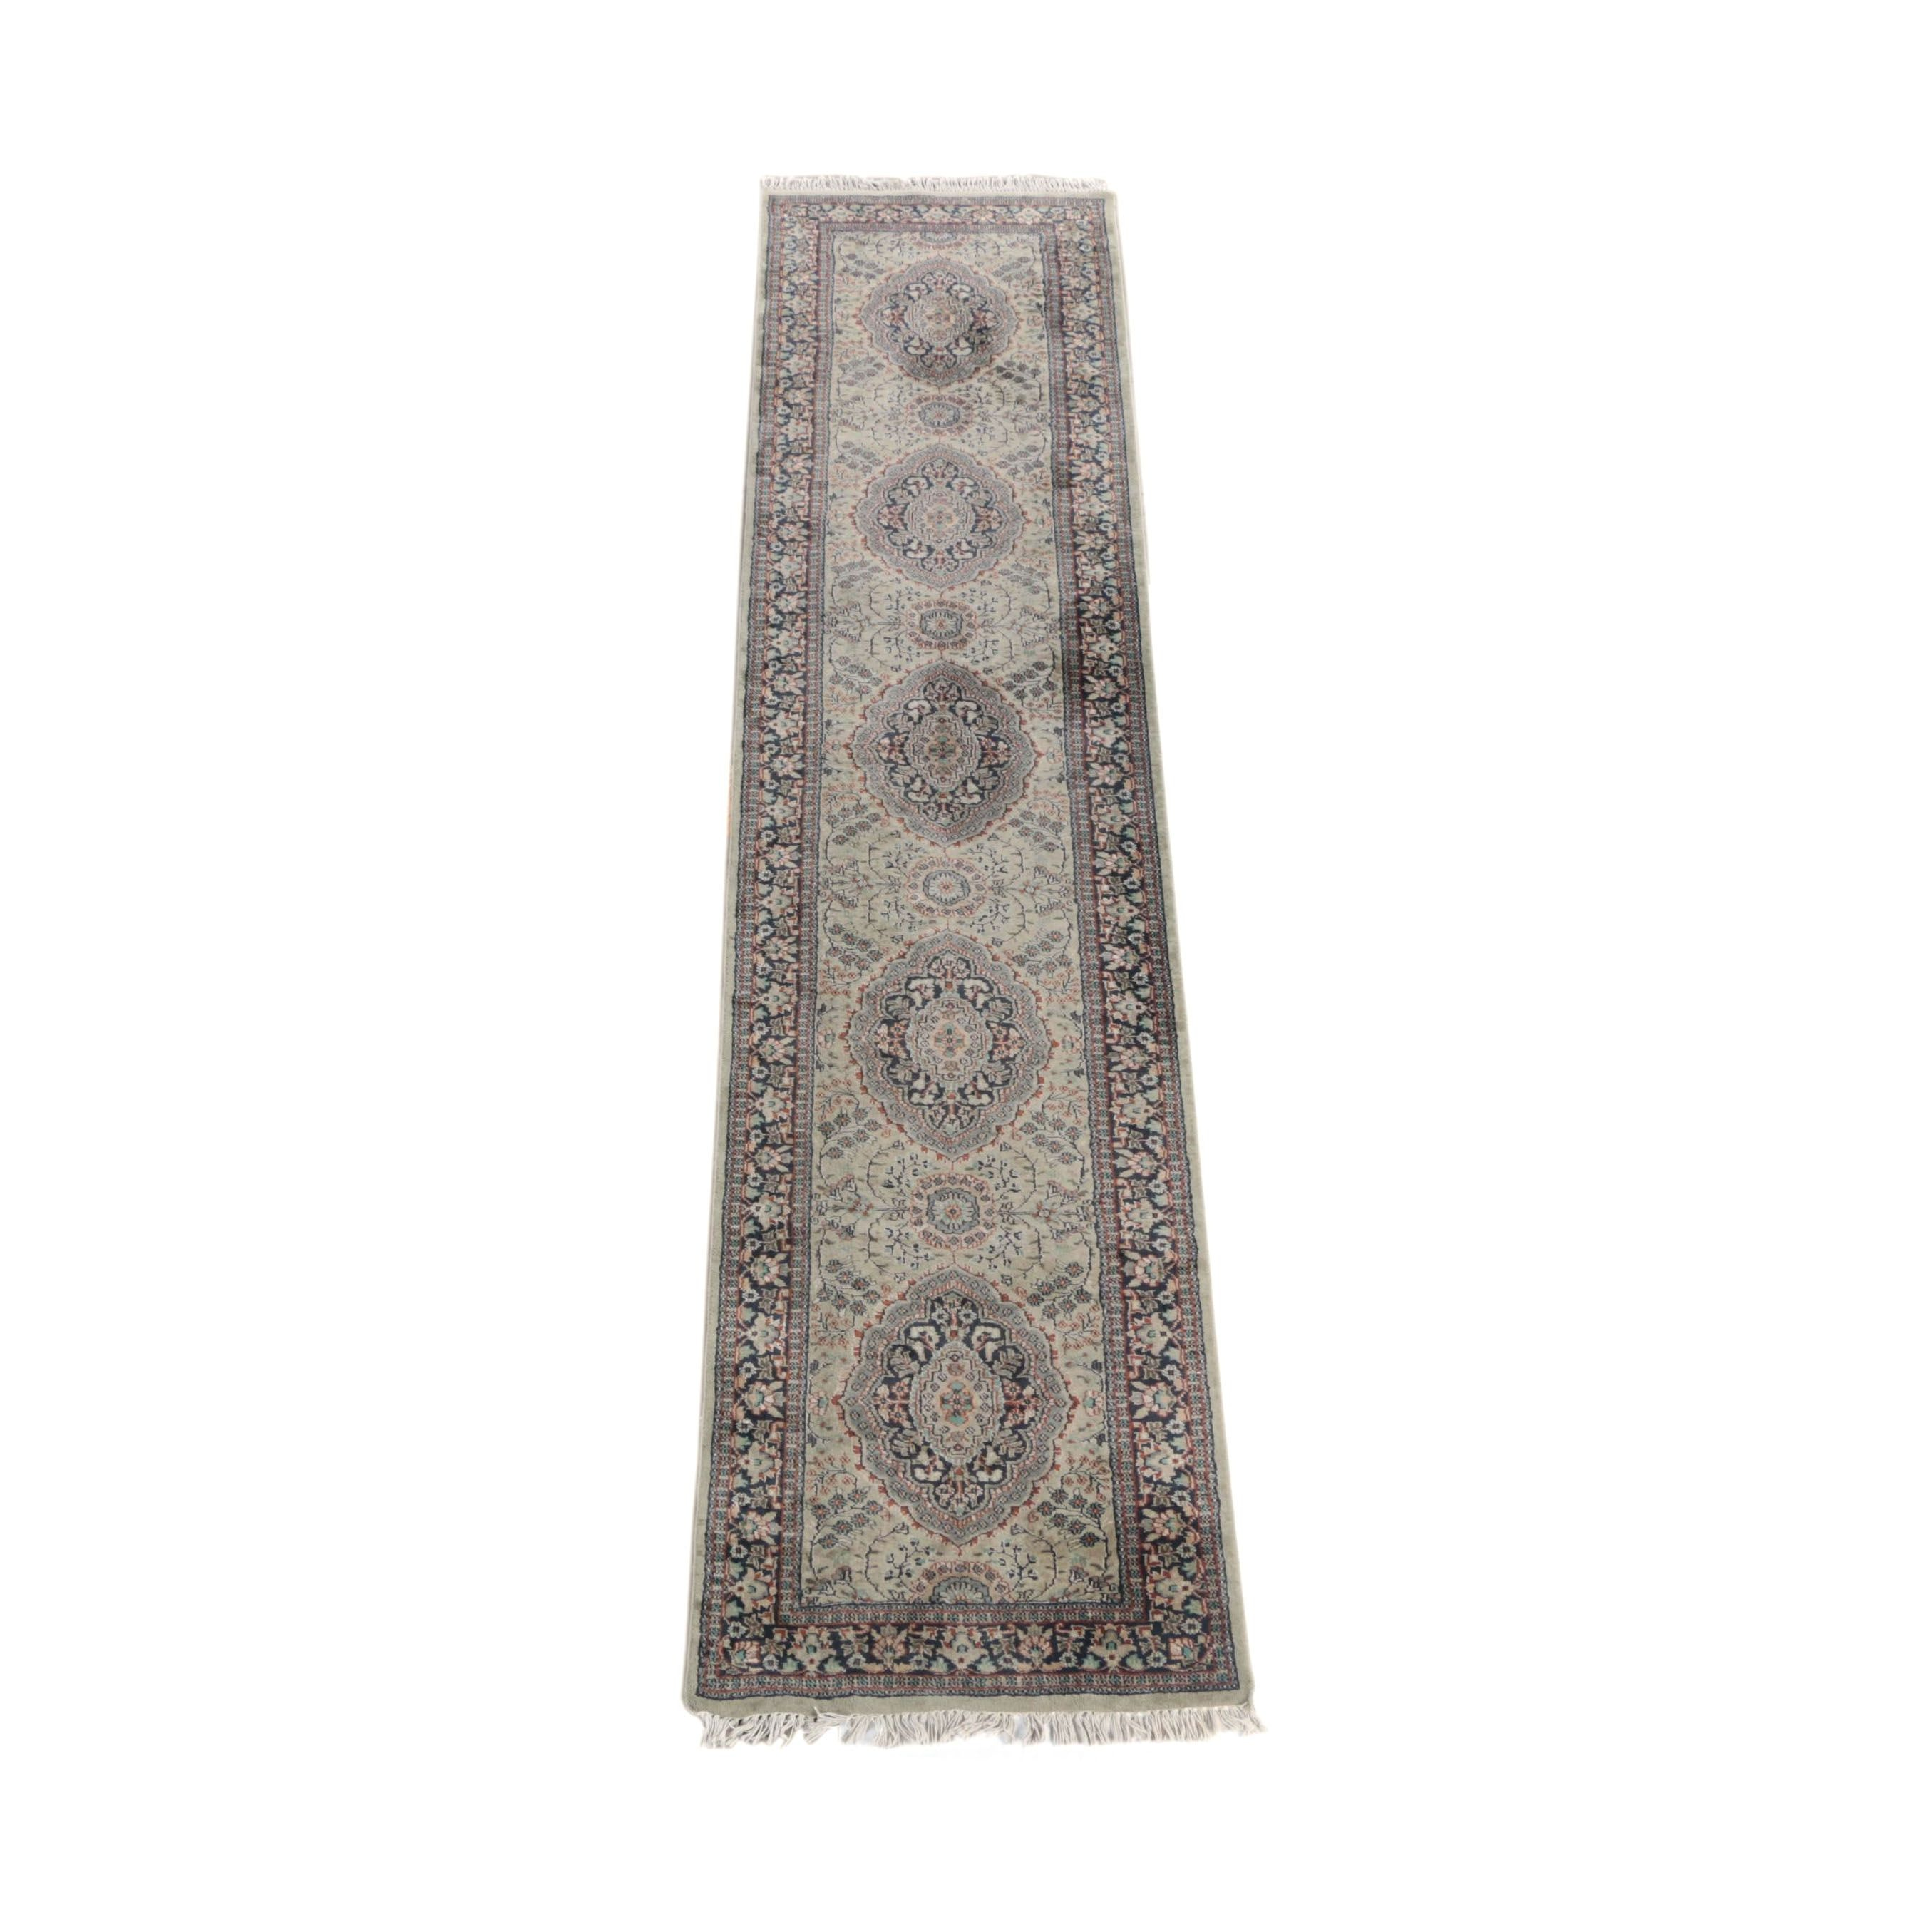 Hand-Knotted Indo-Persian Wool Carpet Runner